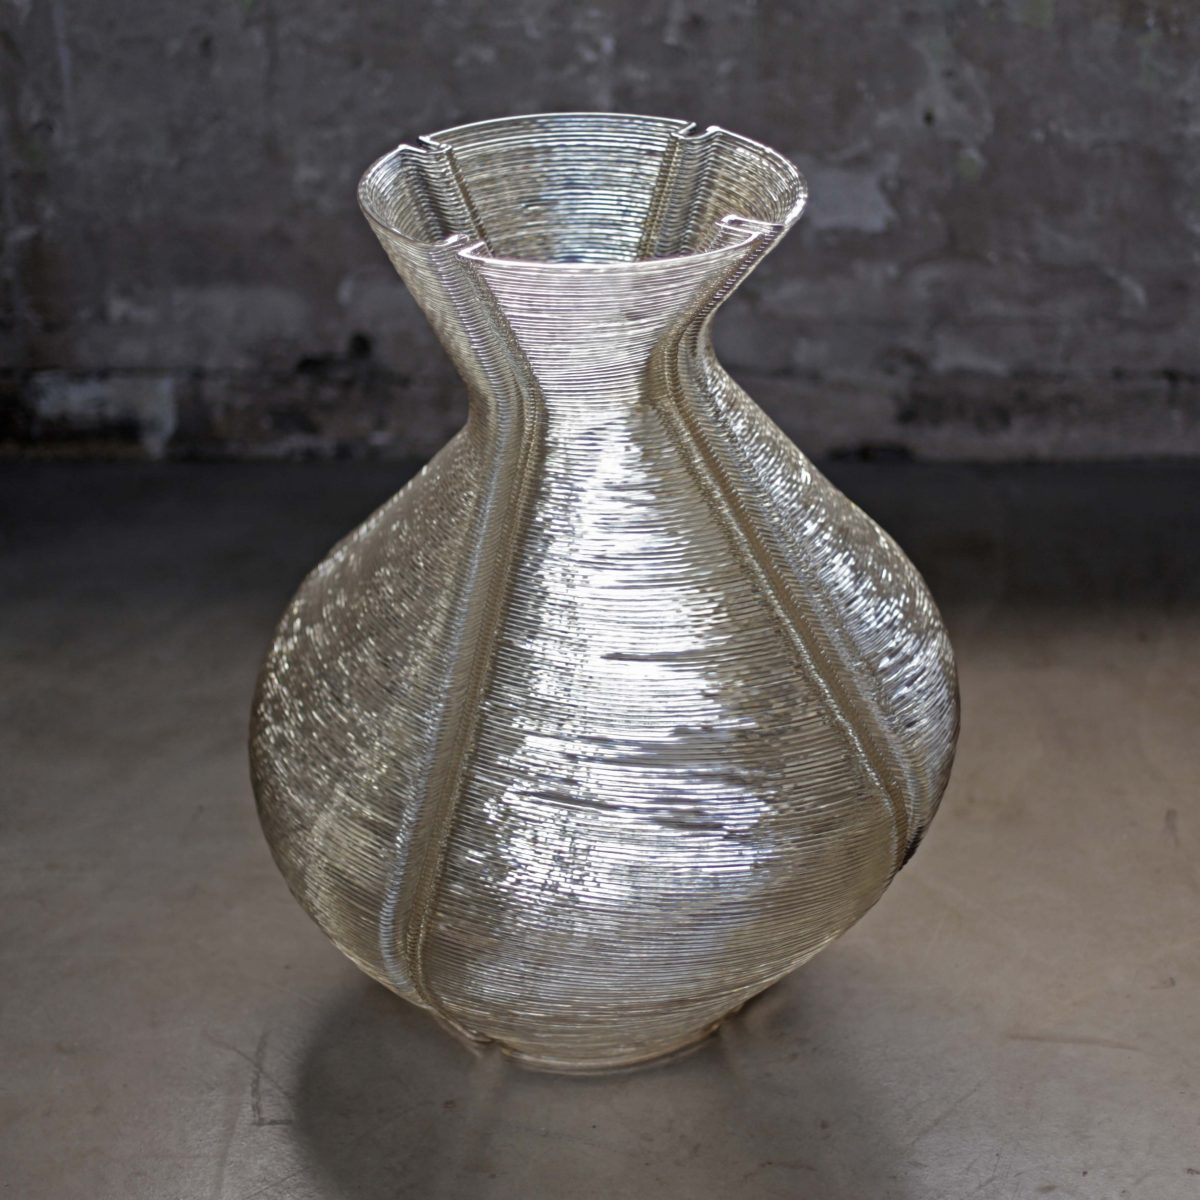 Changing Vase, Transparent. Photo Studio Dirk Vander Kooij